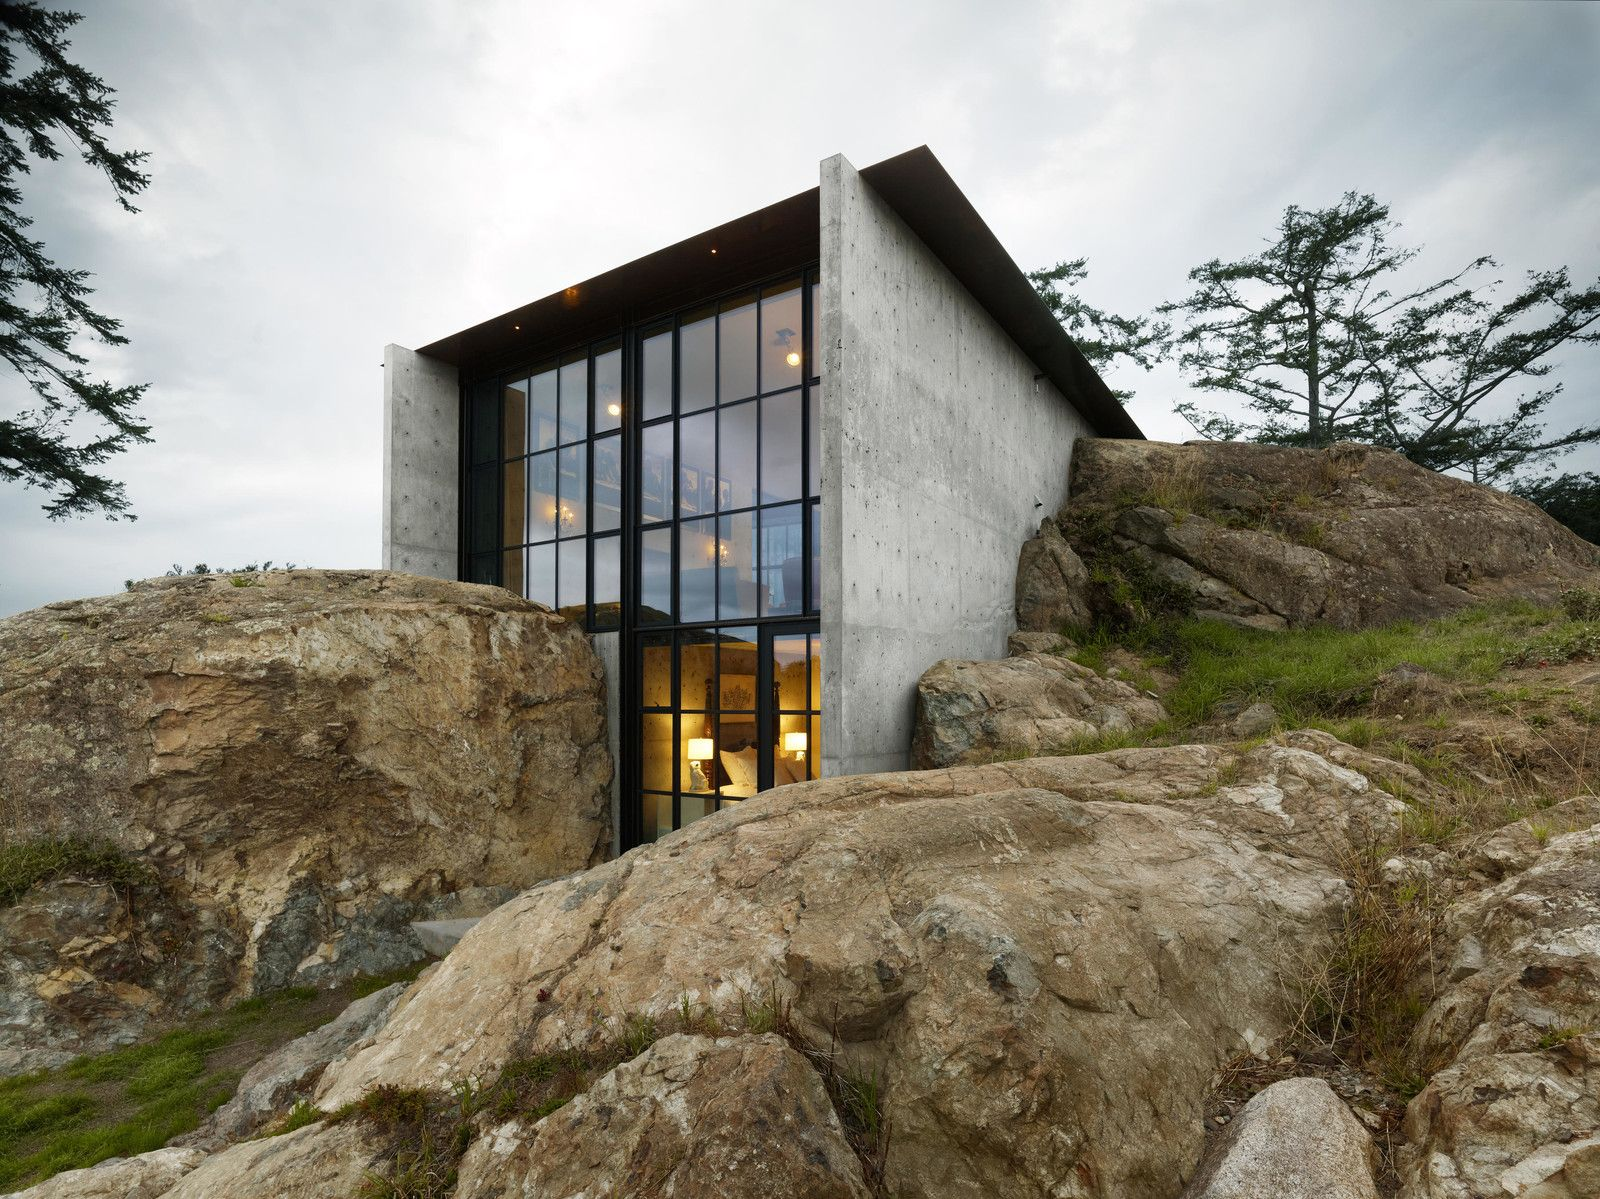 The Owner S Affection For A Stone Outcropping On Her Property And The Views From Its Peak Inspire Interior Architecture Design House On The Rock Concrete House